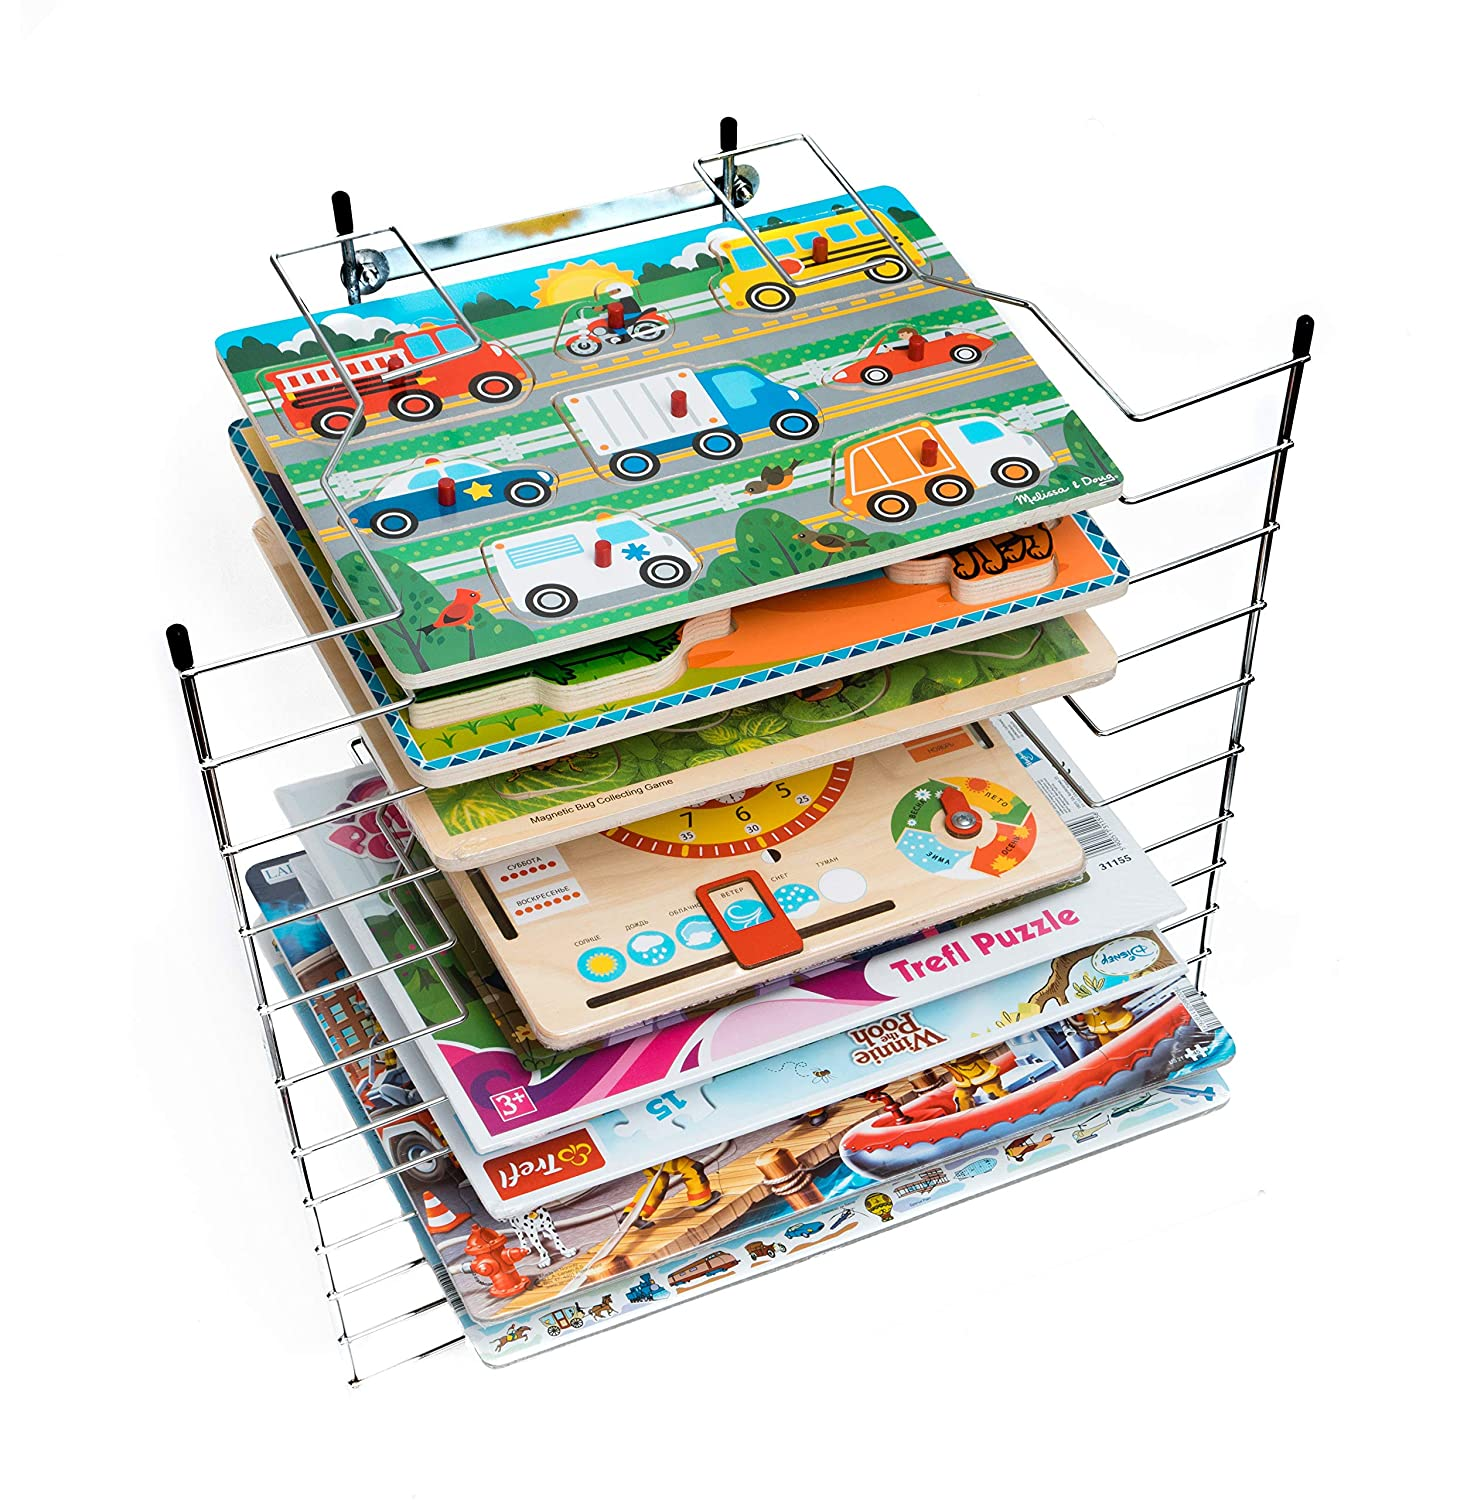 Puzzle Rack Organizer - Holder Storage Wooden Puzzles Toddlers - Large Wire Puzzle Stand Kids - Holds 12 Chunky Puzzles Peg Board Games Kenley